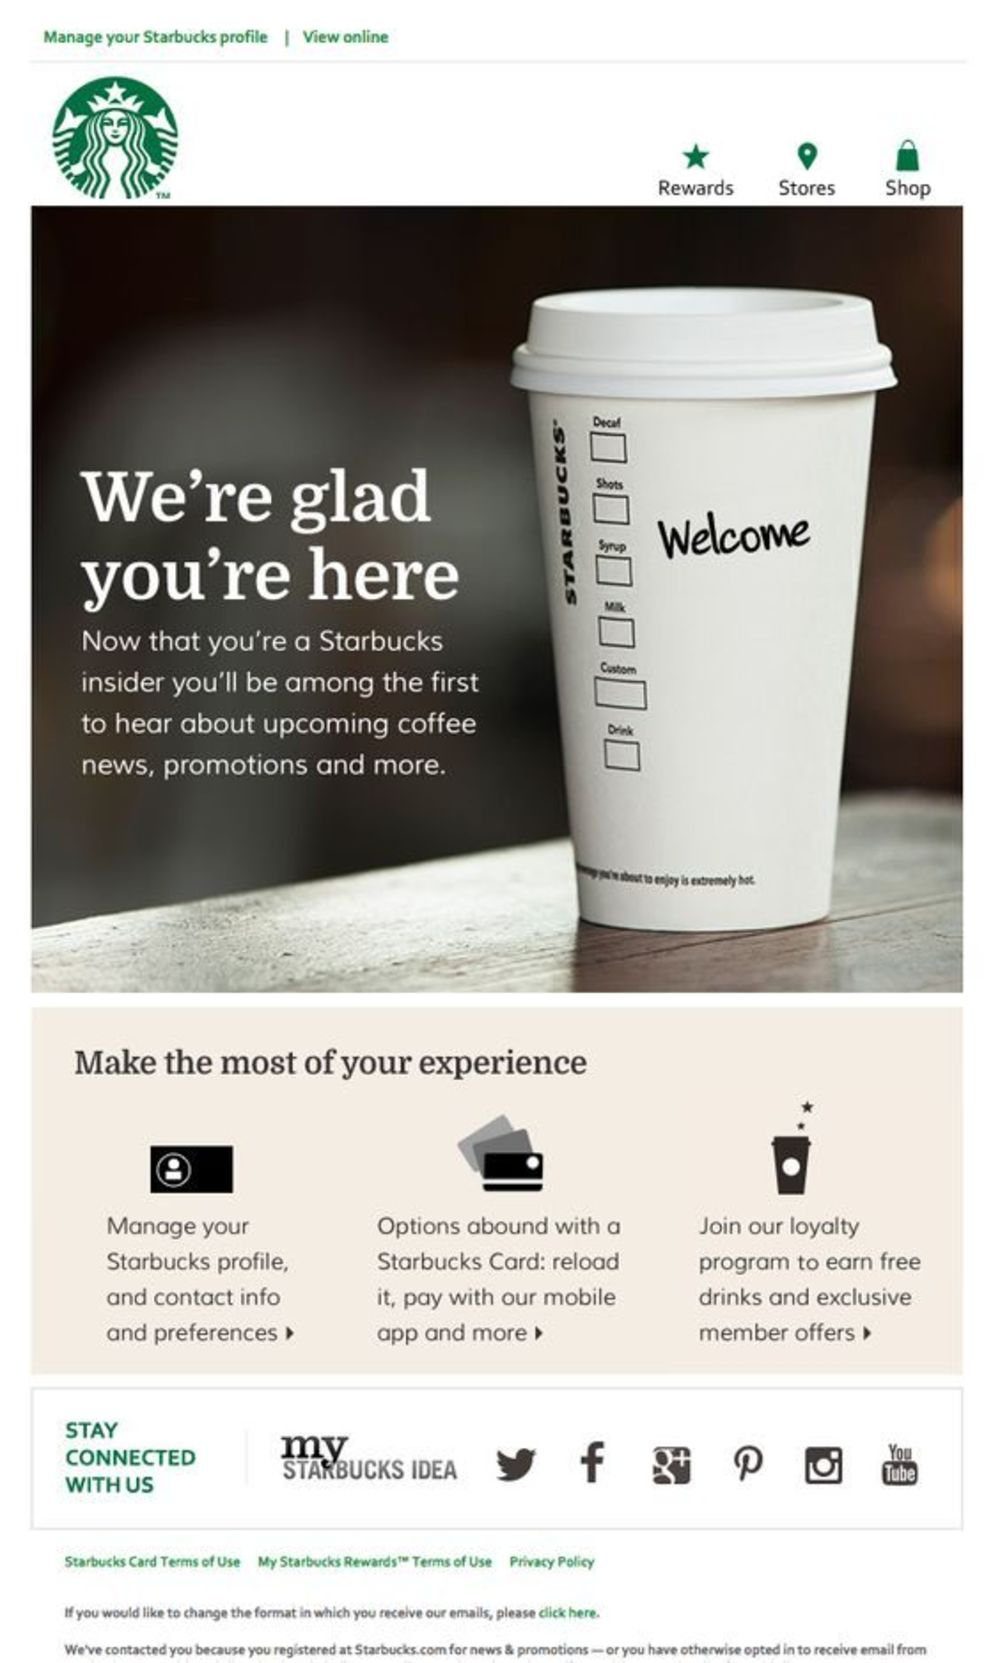 Starbucks example